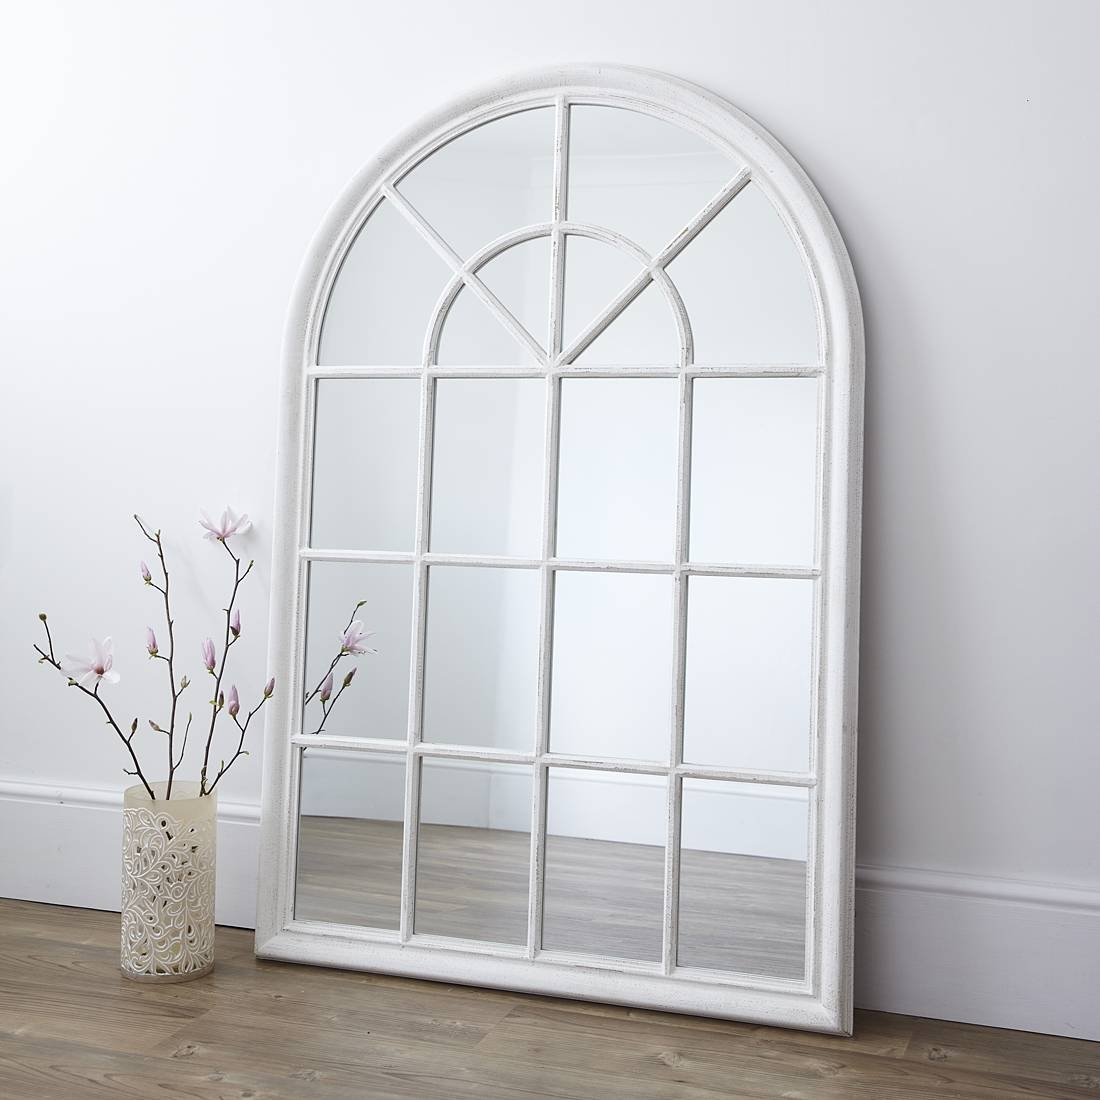 White Arched Window Wall Mirror – Primrose & Plum for Arched Wall Mirrors (Image 14 of 15)